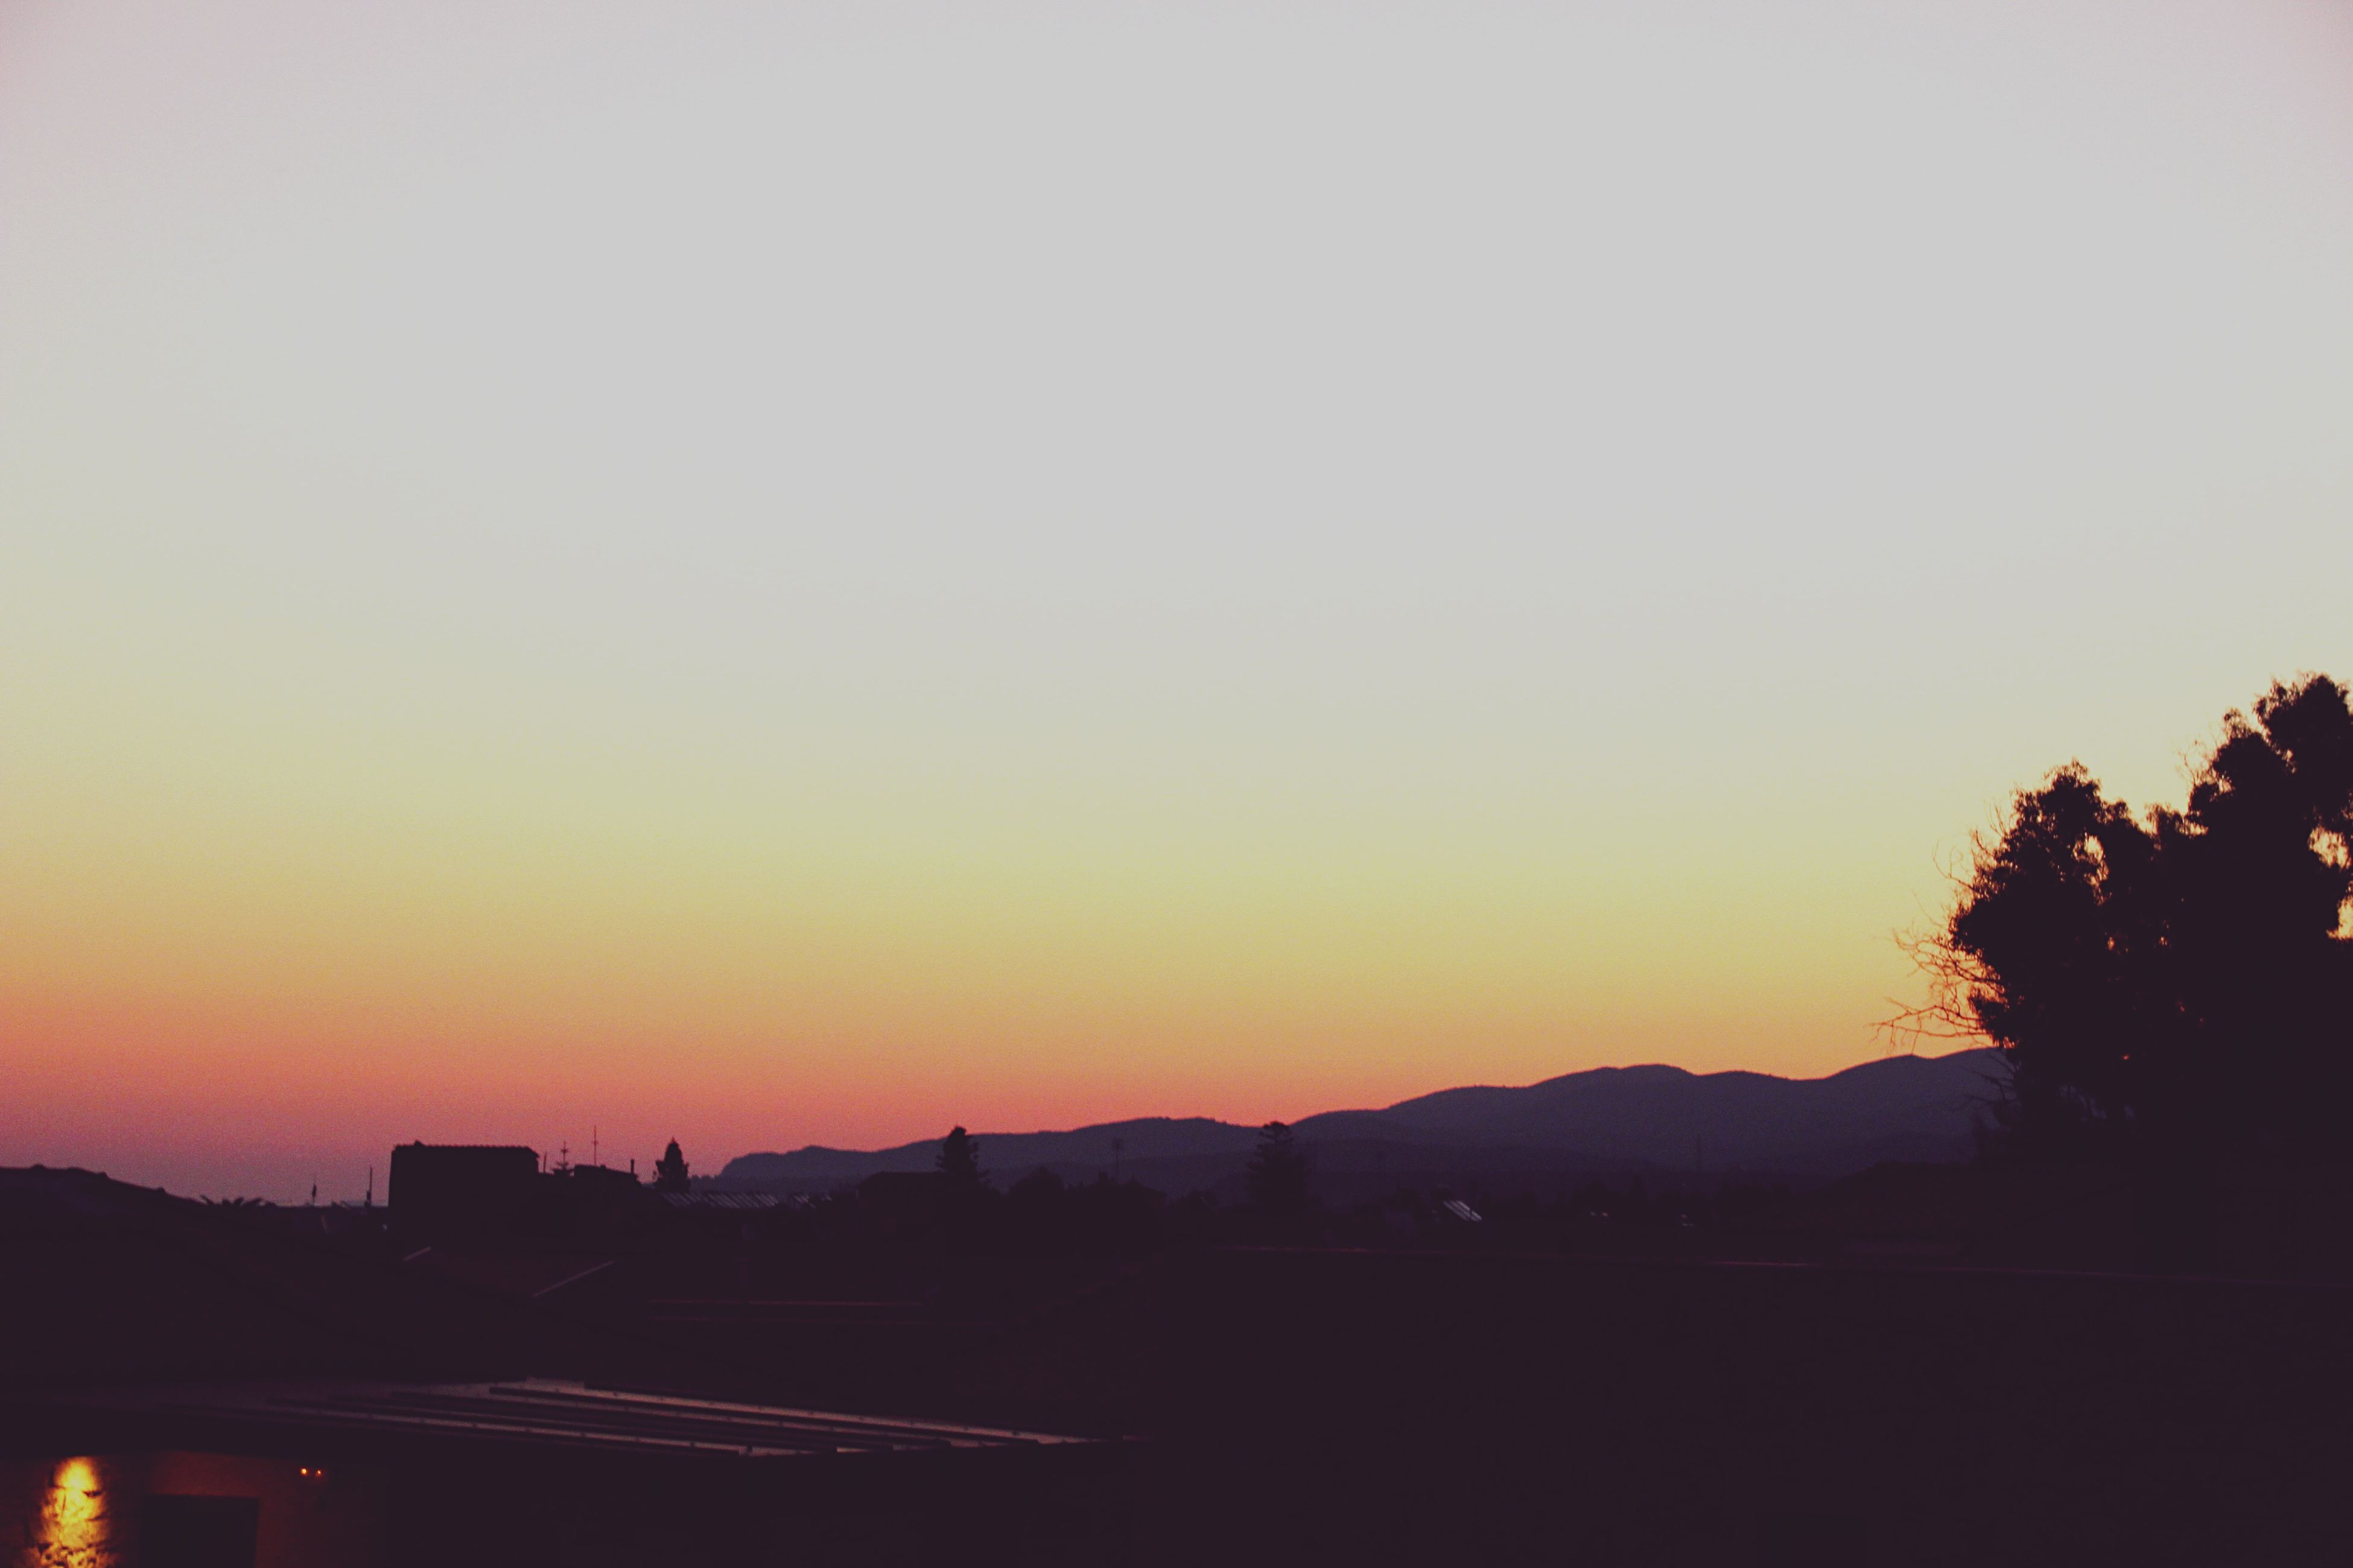 copy space, silhouette, clear sky, sunset, landscape, tranquil scene, tranquility, scenics, mountain, solitude, dark, beauty in nature, remote, outline, nature, outdoors, mountain range, calm, in front of, countryside, majestic, non-urban scene, no people, long, moody sky, country road